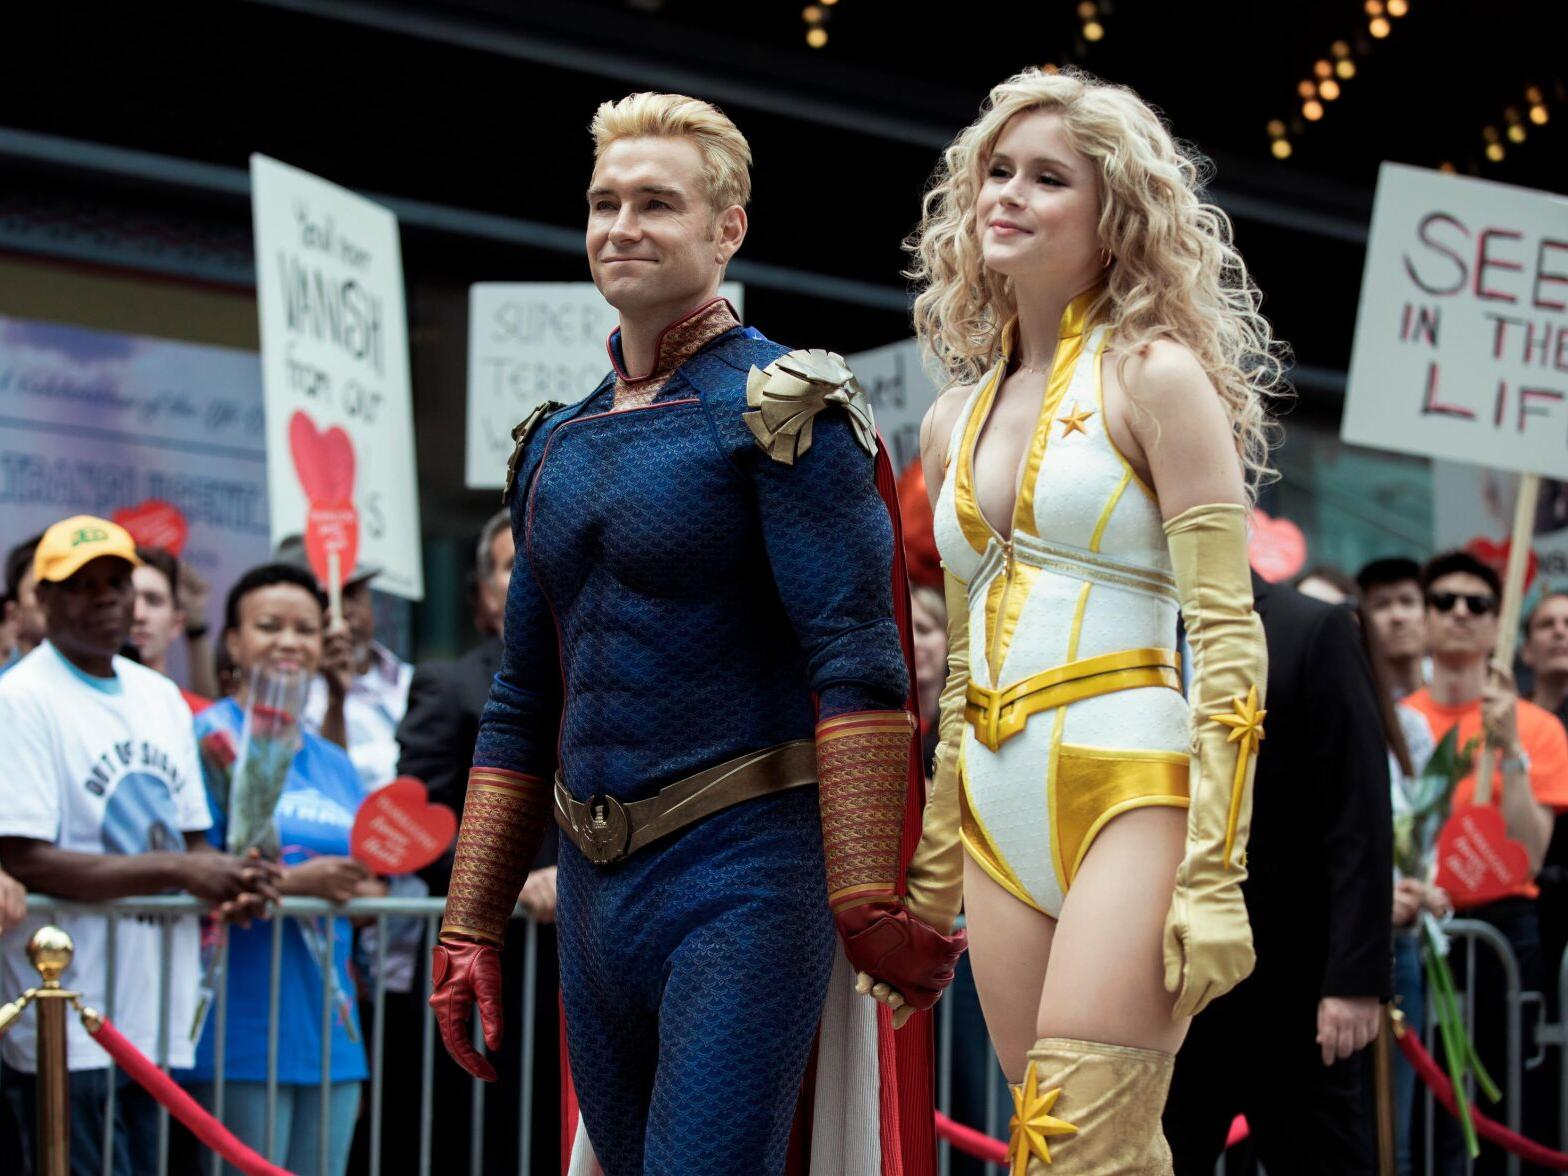 """Erin Moriarty of """"The Boys"""" Steals the Show with her Super Hero Dressup- Let's Know her Better"""